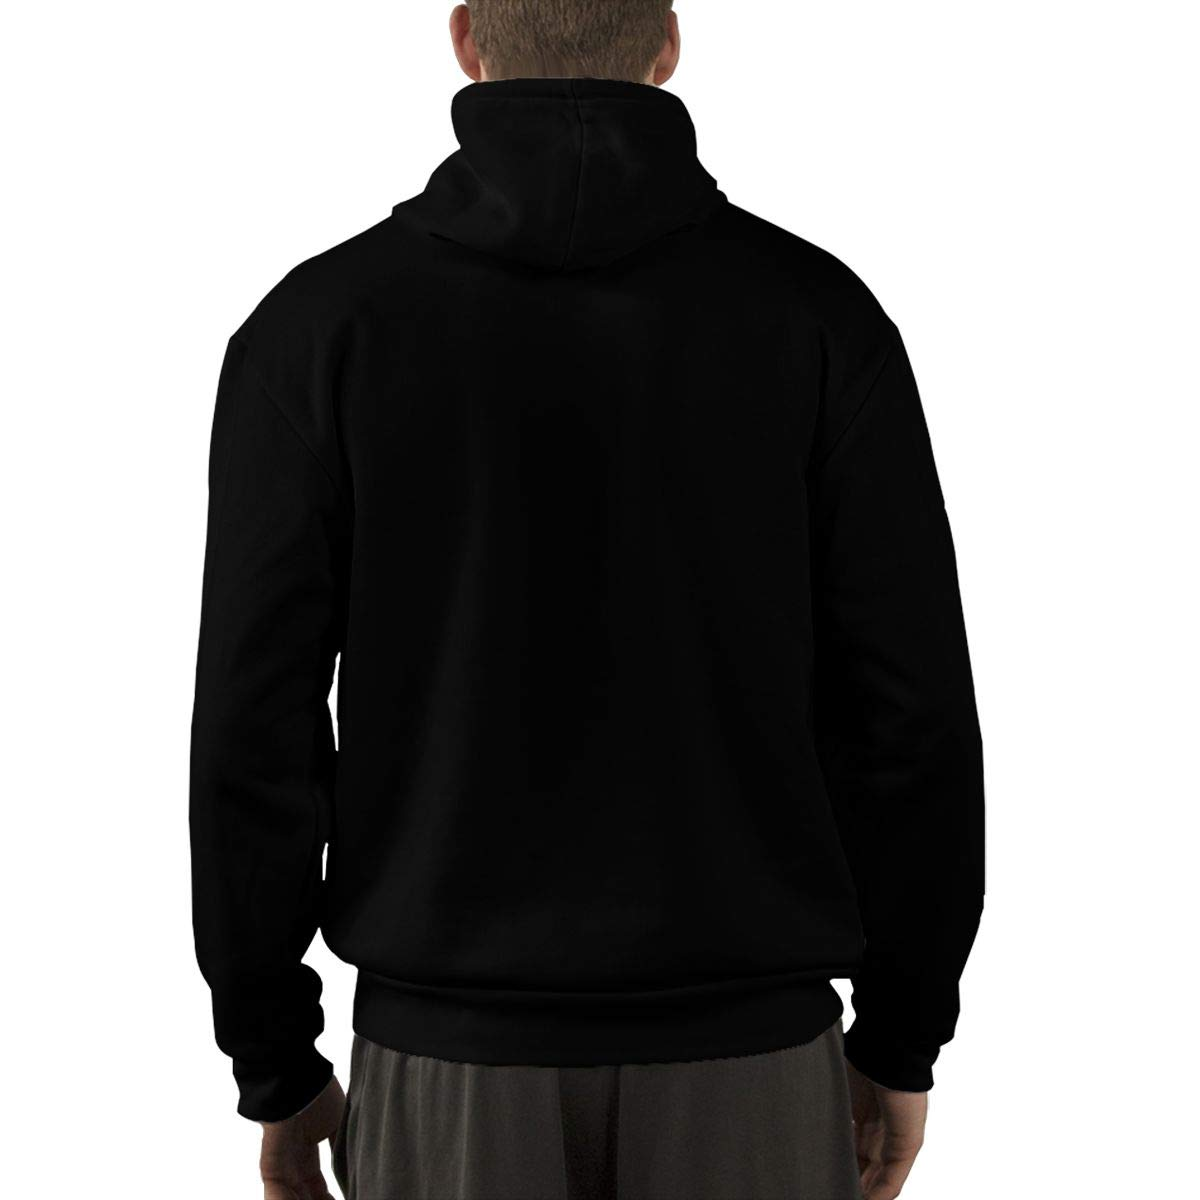 Eowlte Over The Garden Wall Mens Long Sleeve Classic Hooded Pocket Sweatshirt Black M